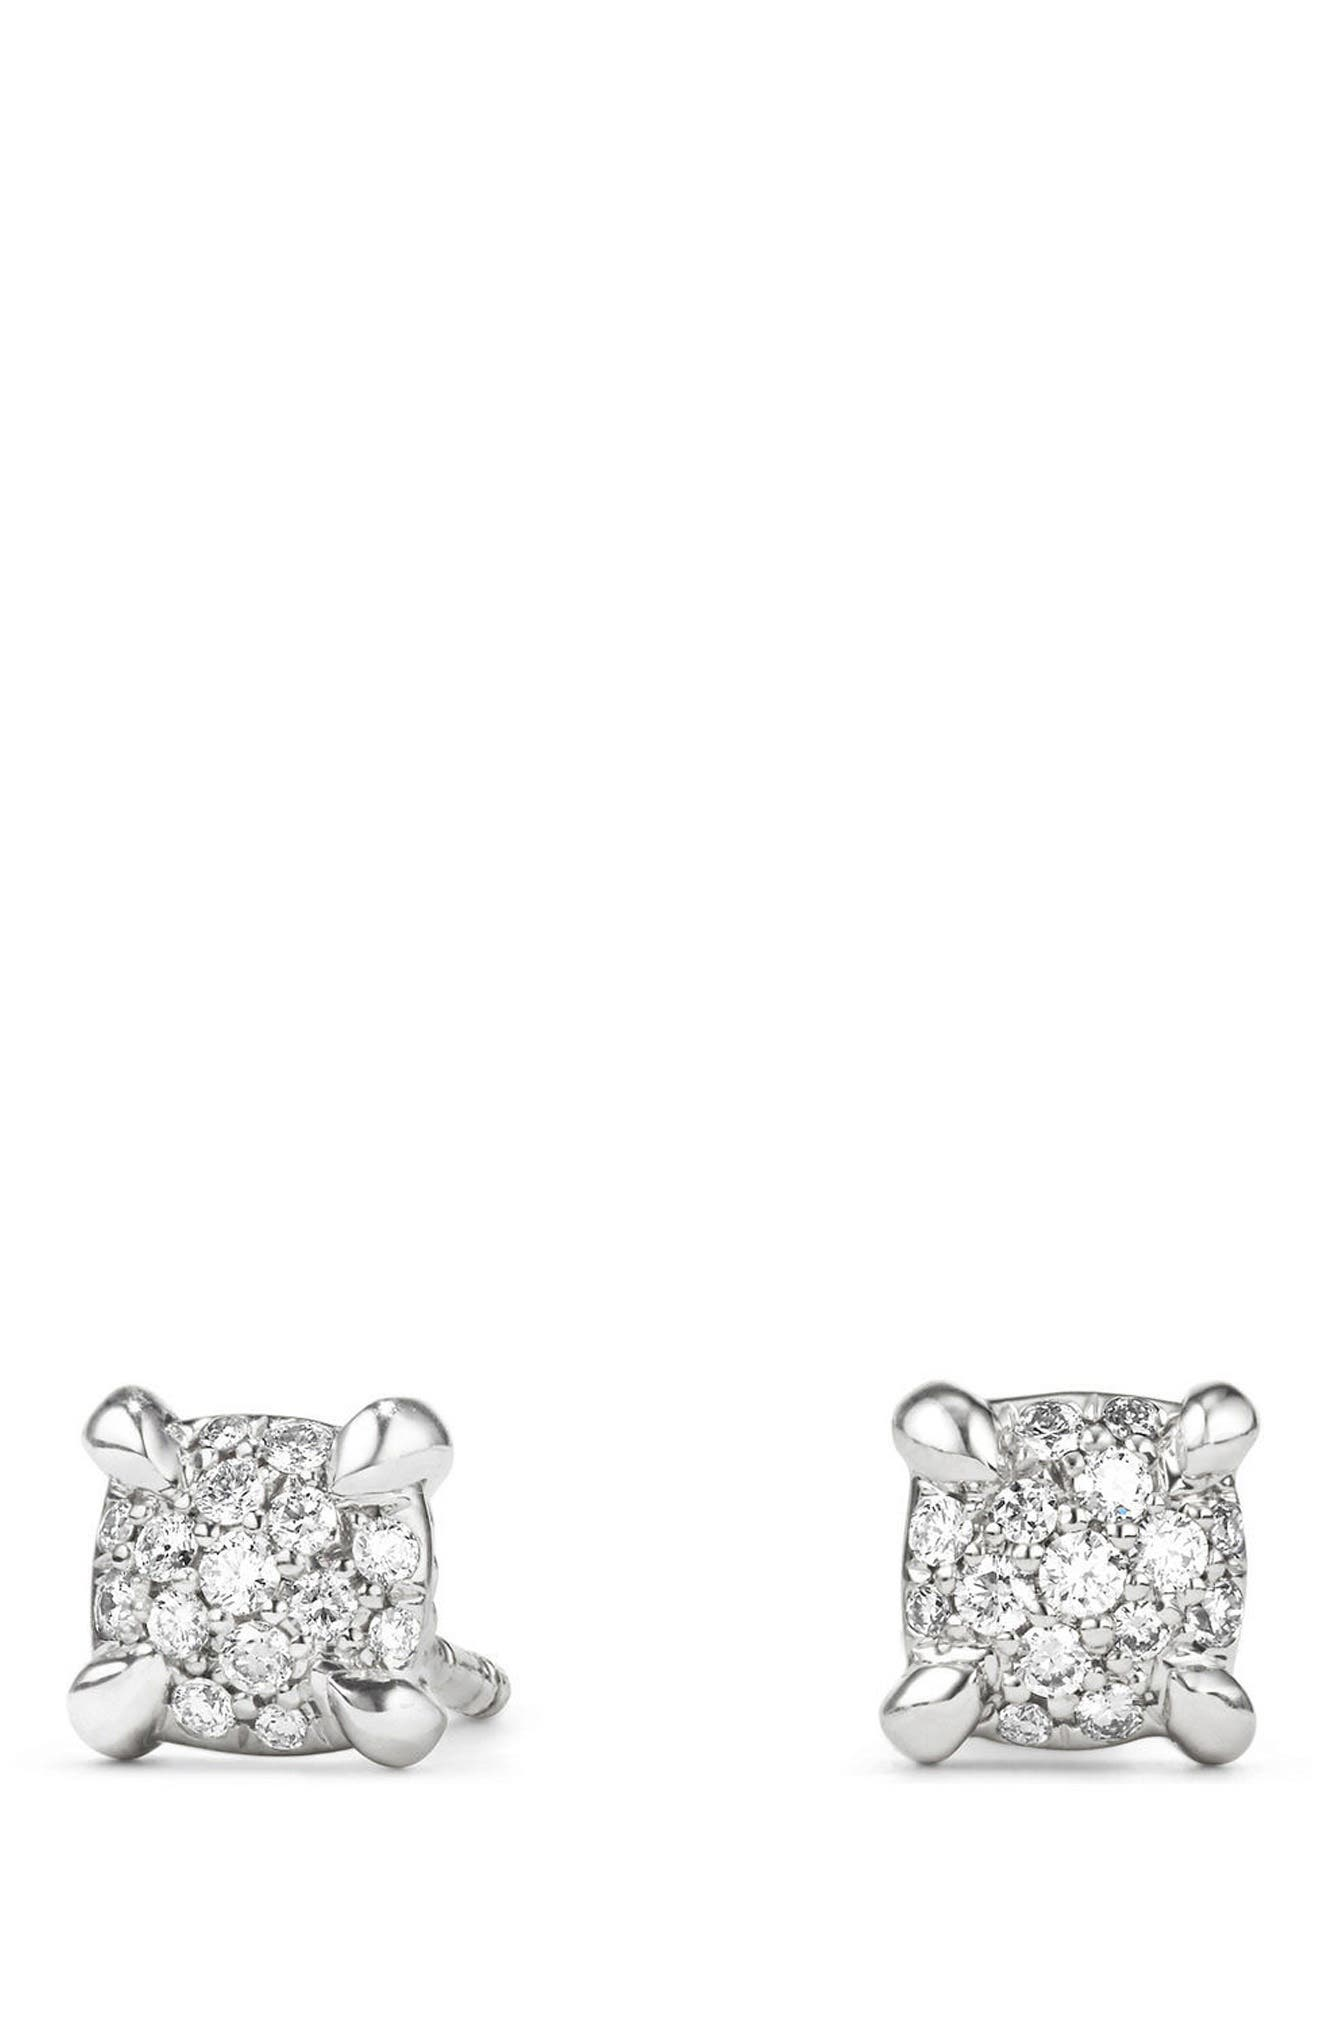 Alternate Image 1 Selected - David Yurman Châtelaine Stud Earrings with Diamonds